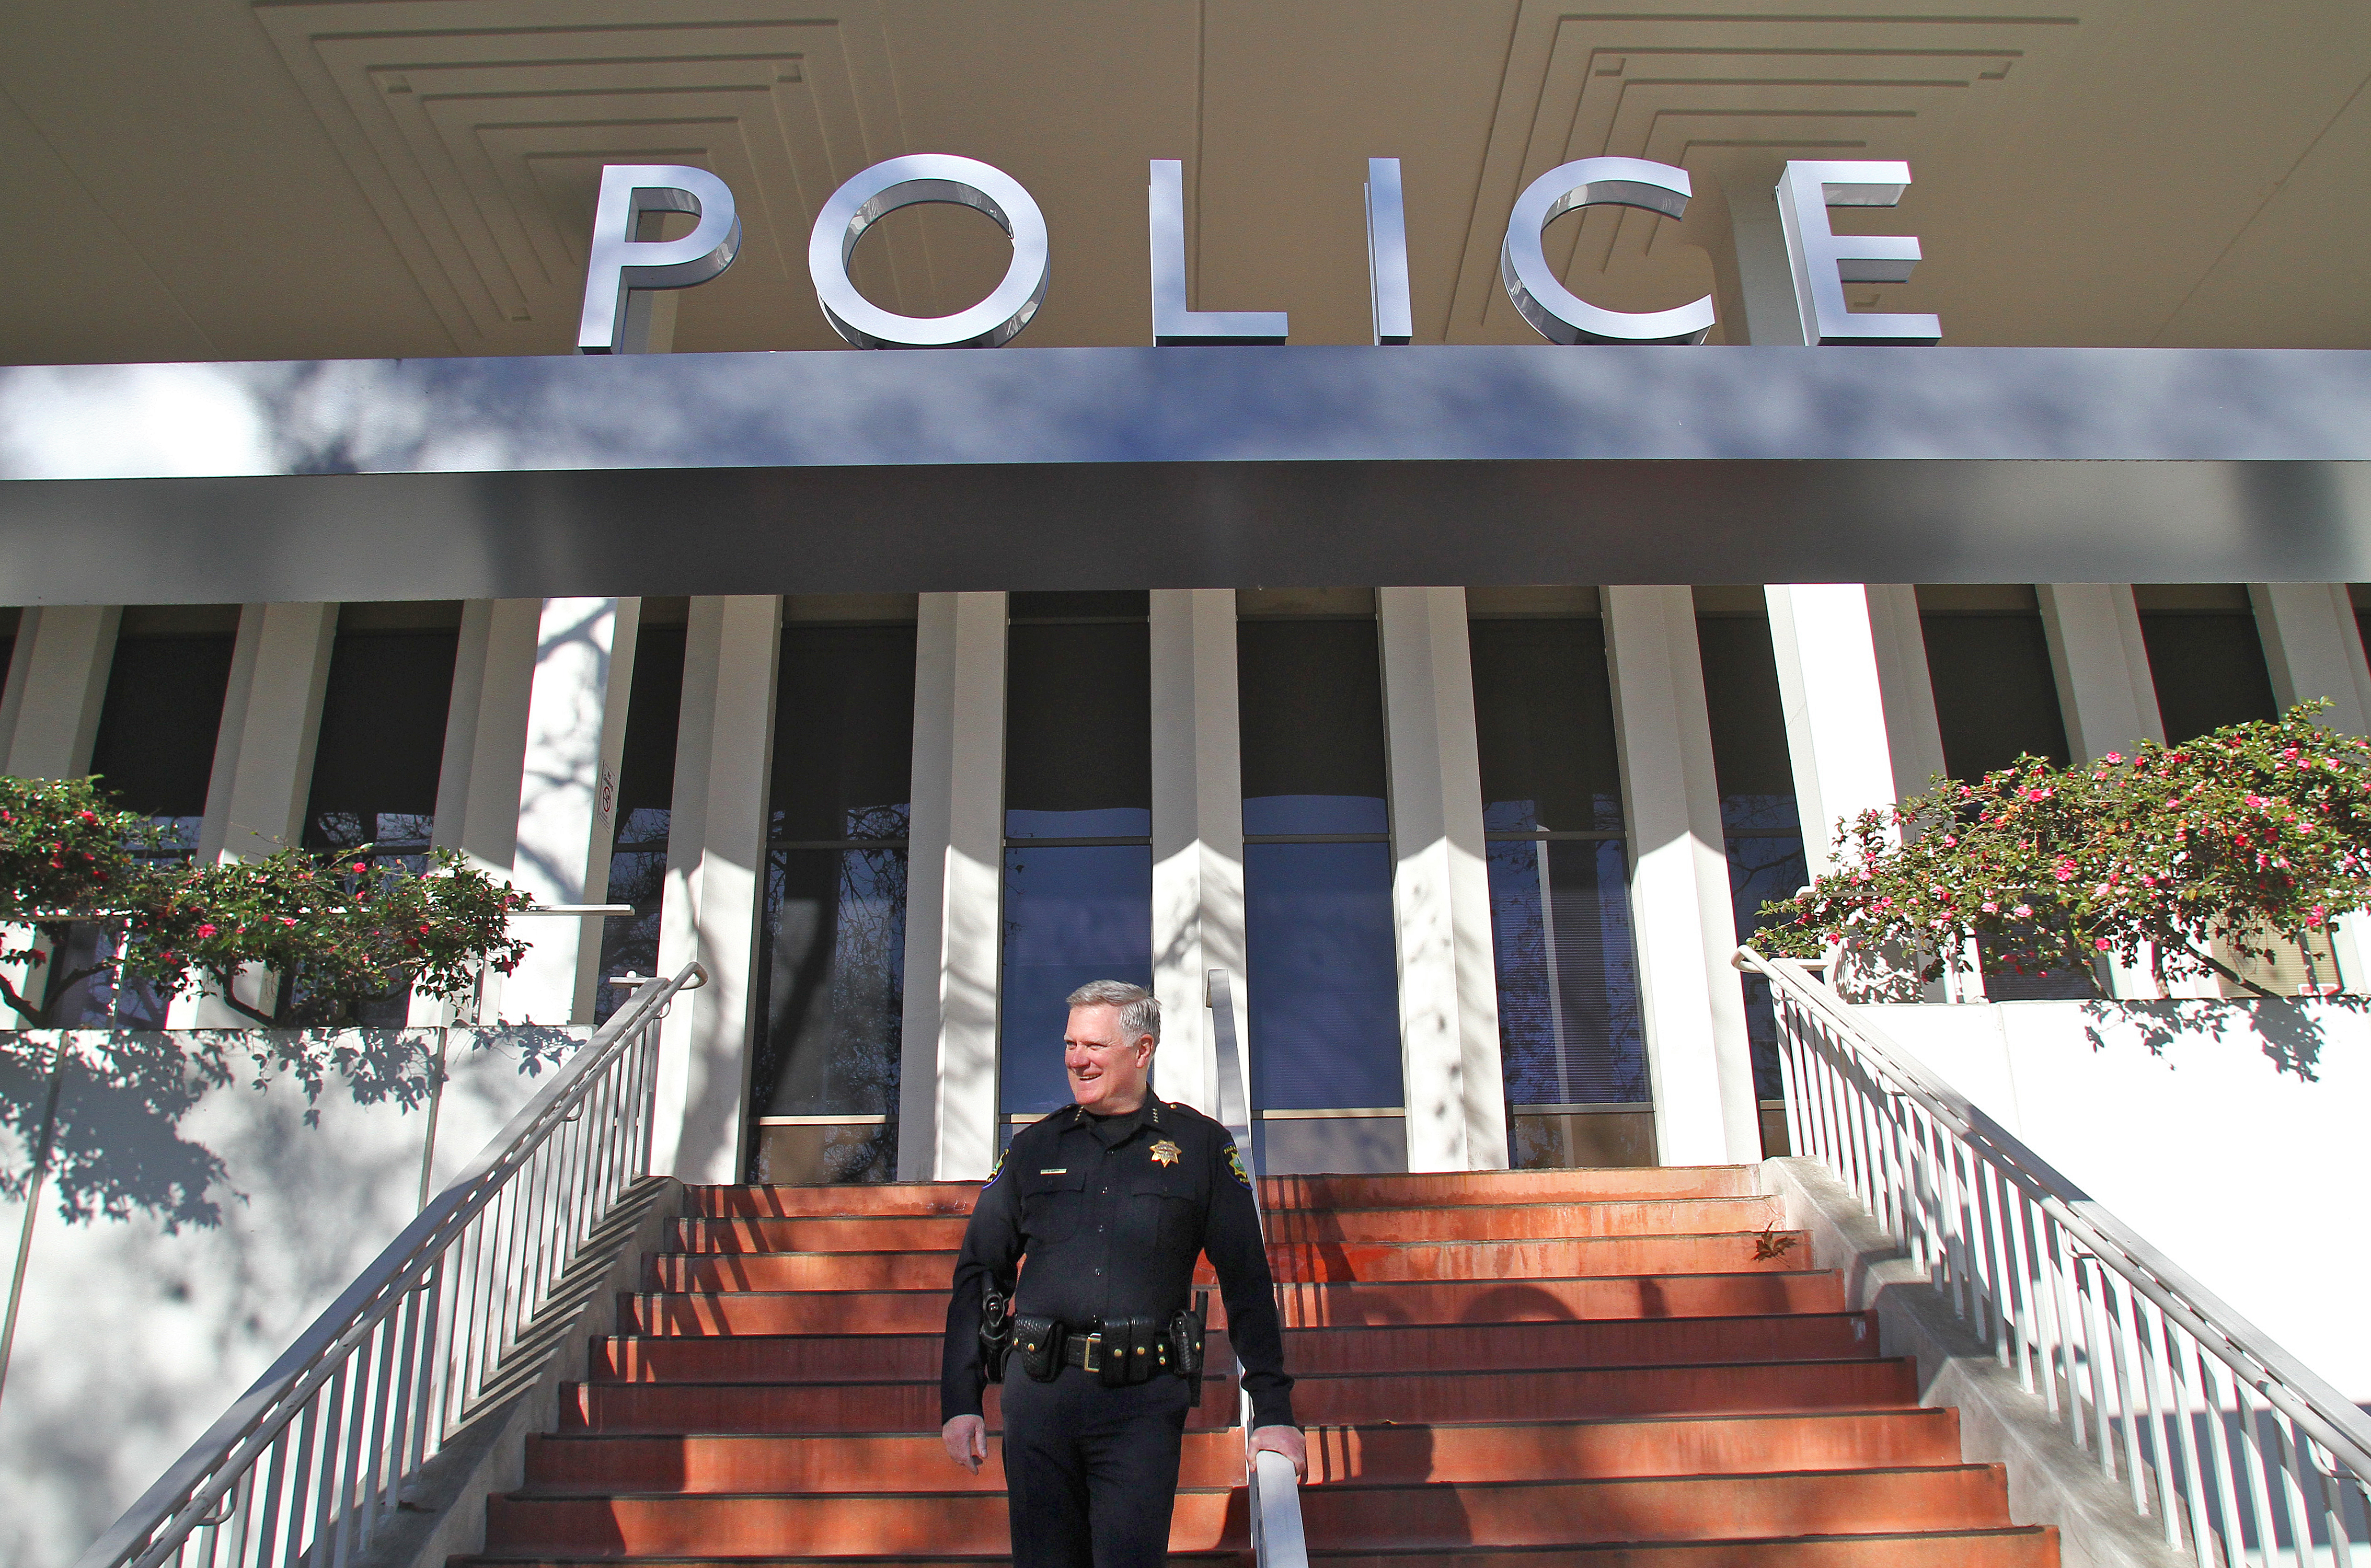 Dennis Burns, who retired as Palo Alto's police chief last month, stands in front of the Police Department headquarters onForest Avenuein Palo Alto. Photo by Veronica Weber/Palo Alto Weekly.